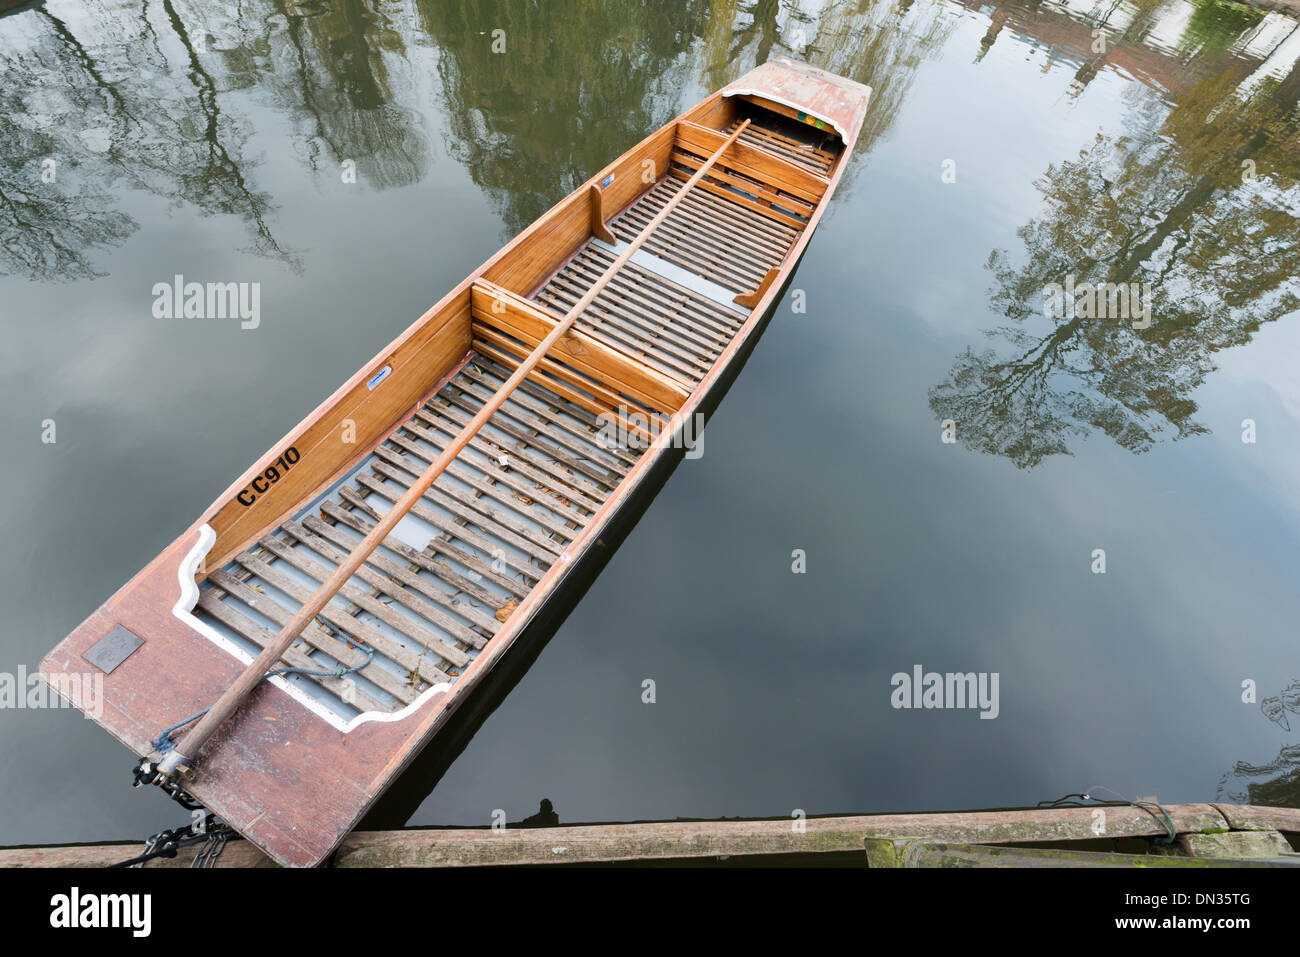 A punt moored on the River Cam Cambridge UK - Stock Image